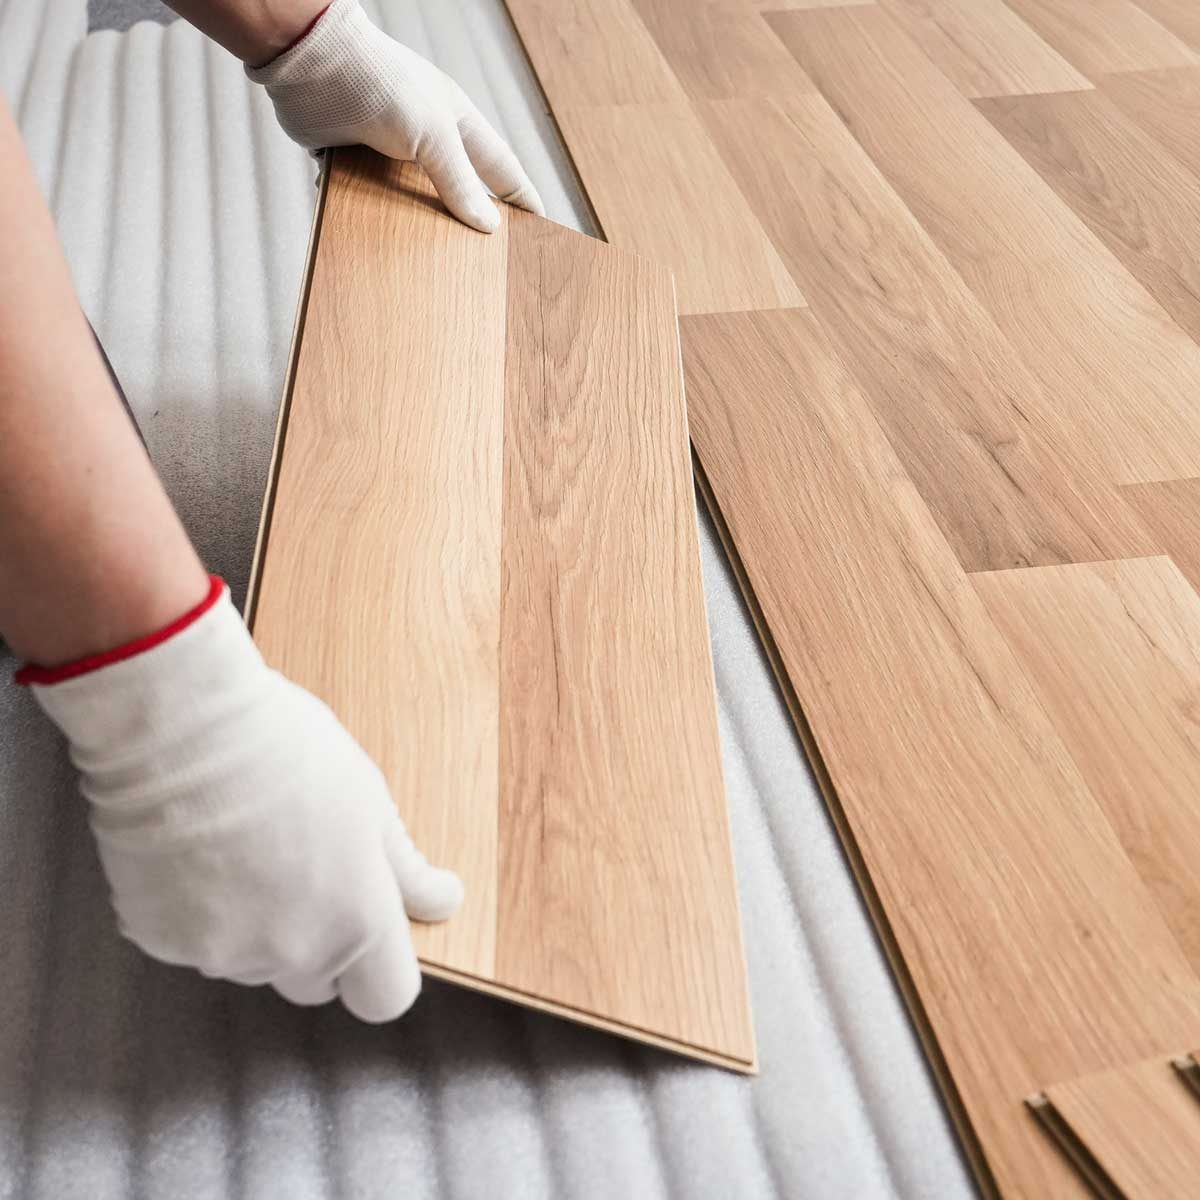 8 Essential Tools For Laminate Flooring